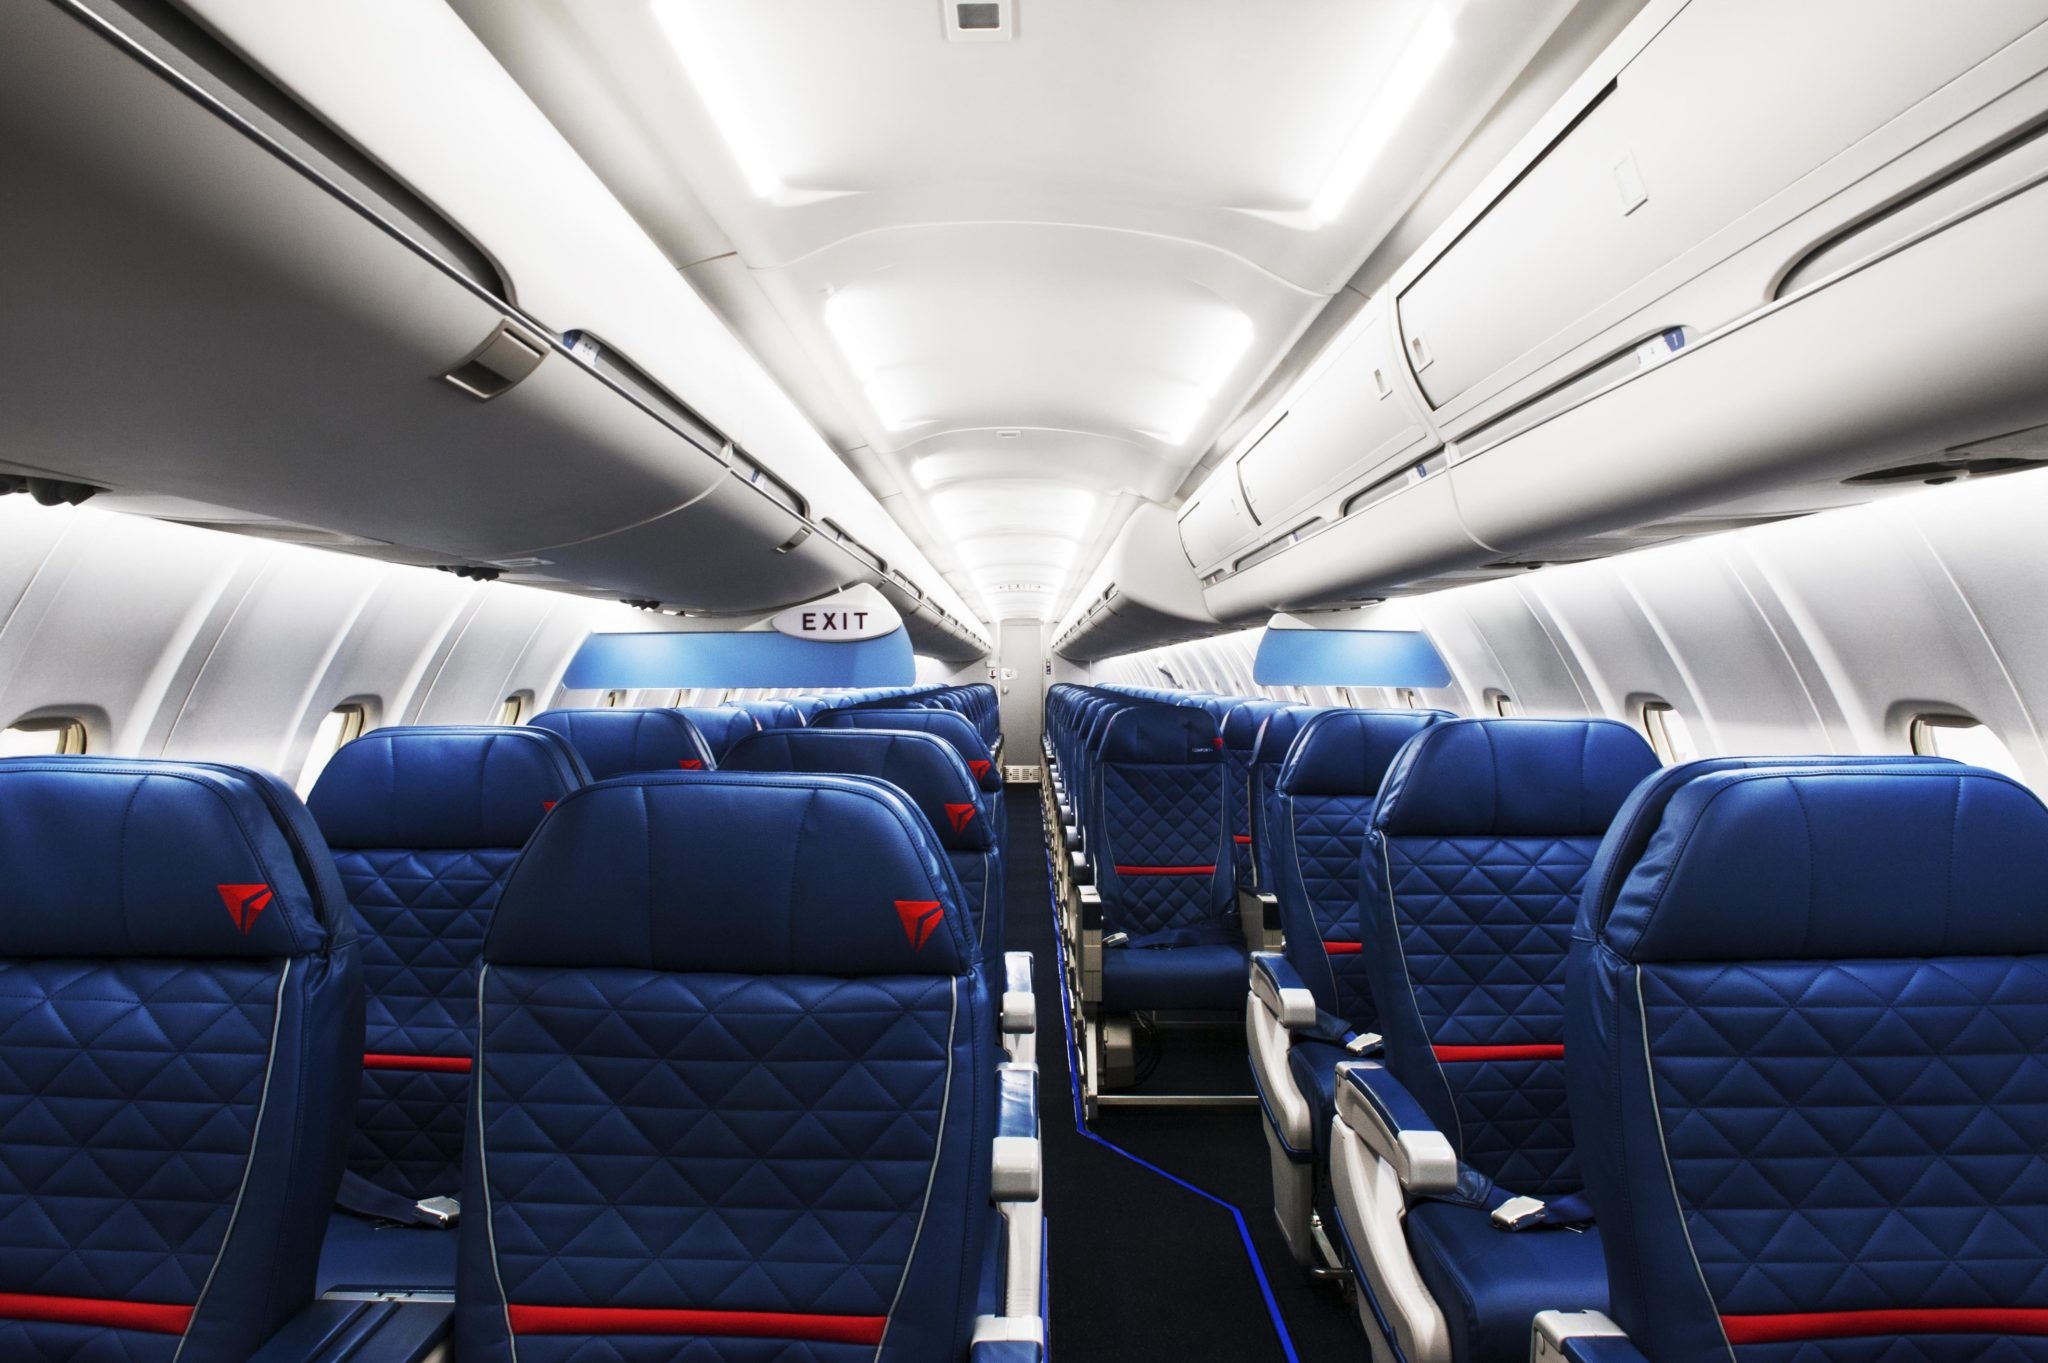 Regional airlines up their game to meet customer